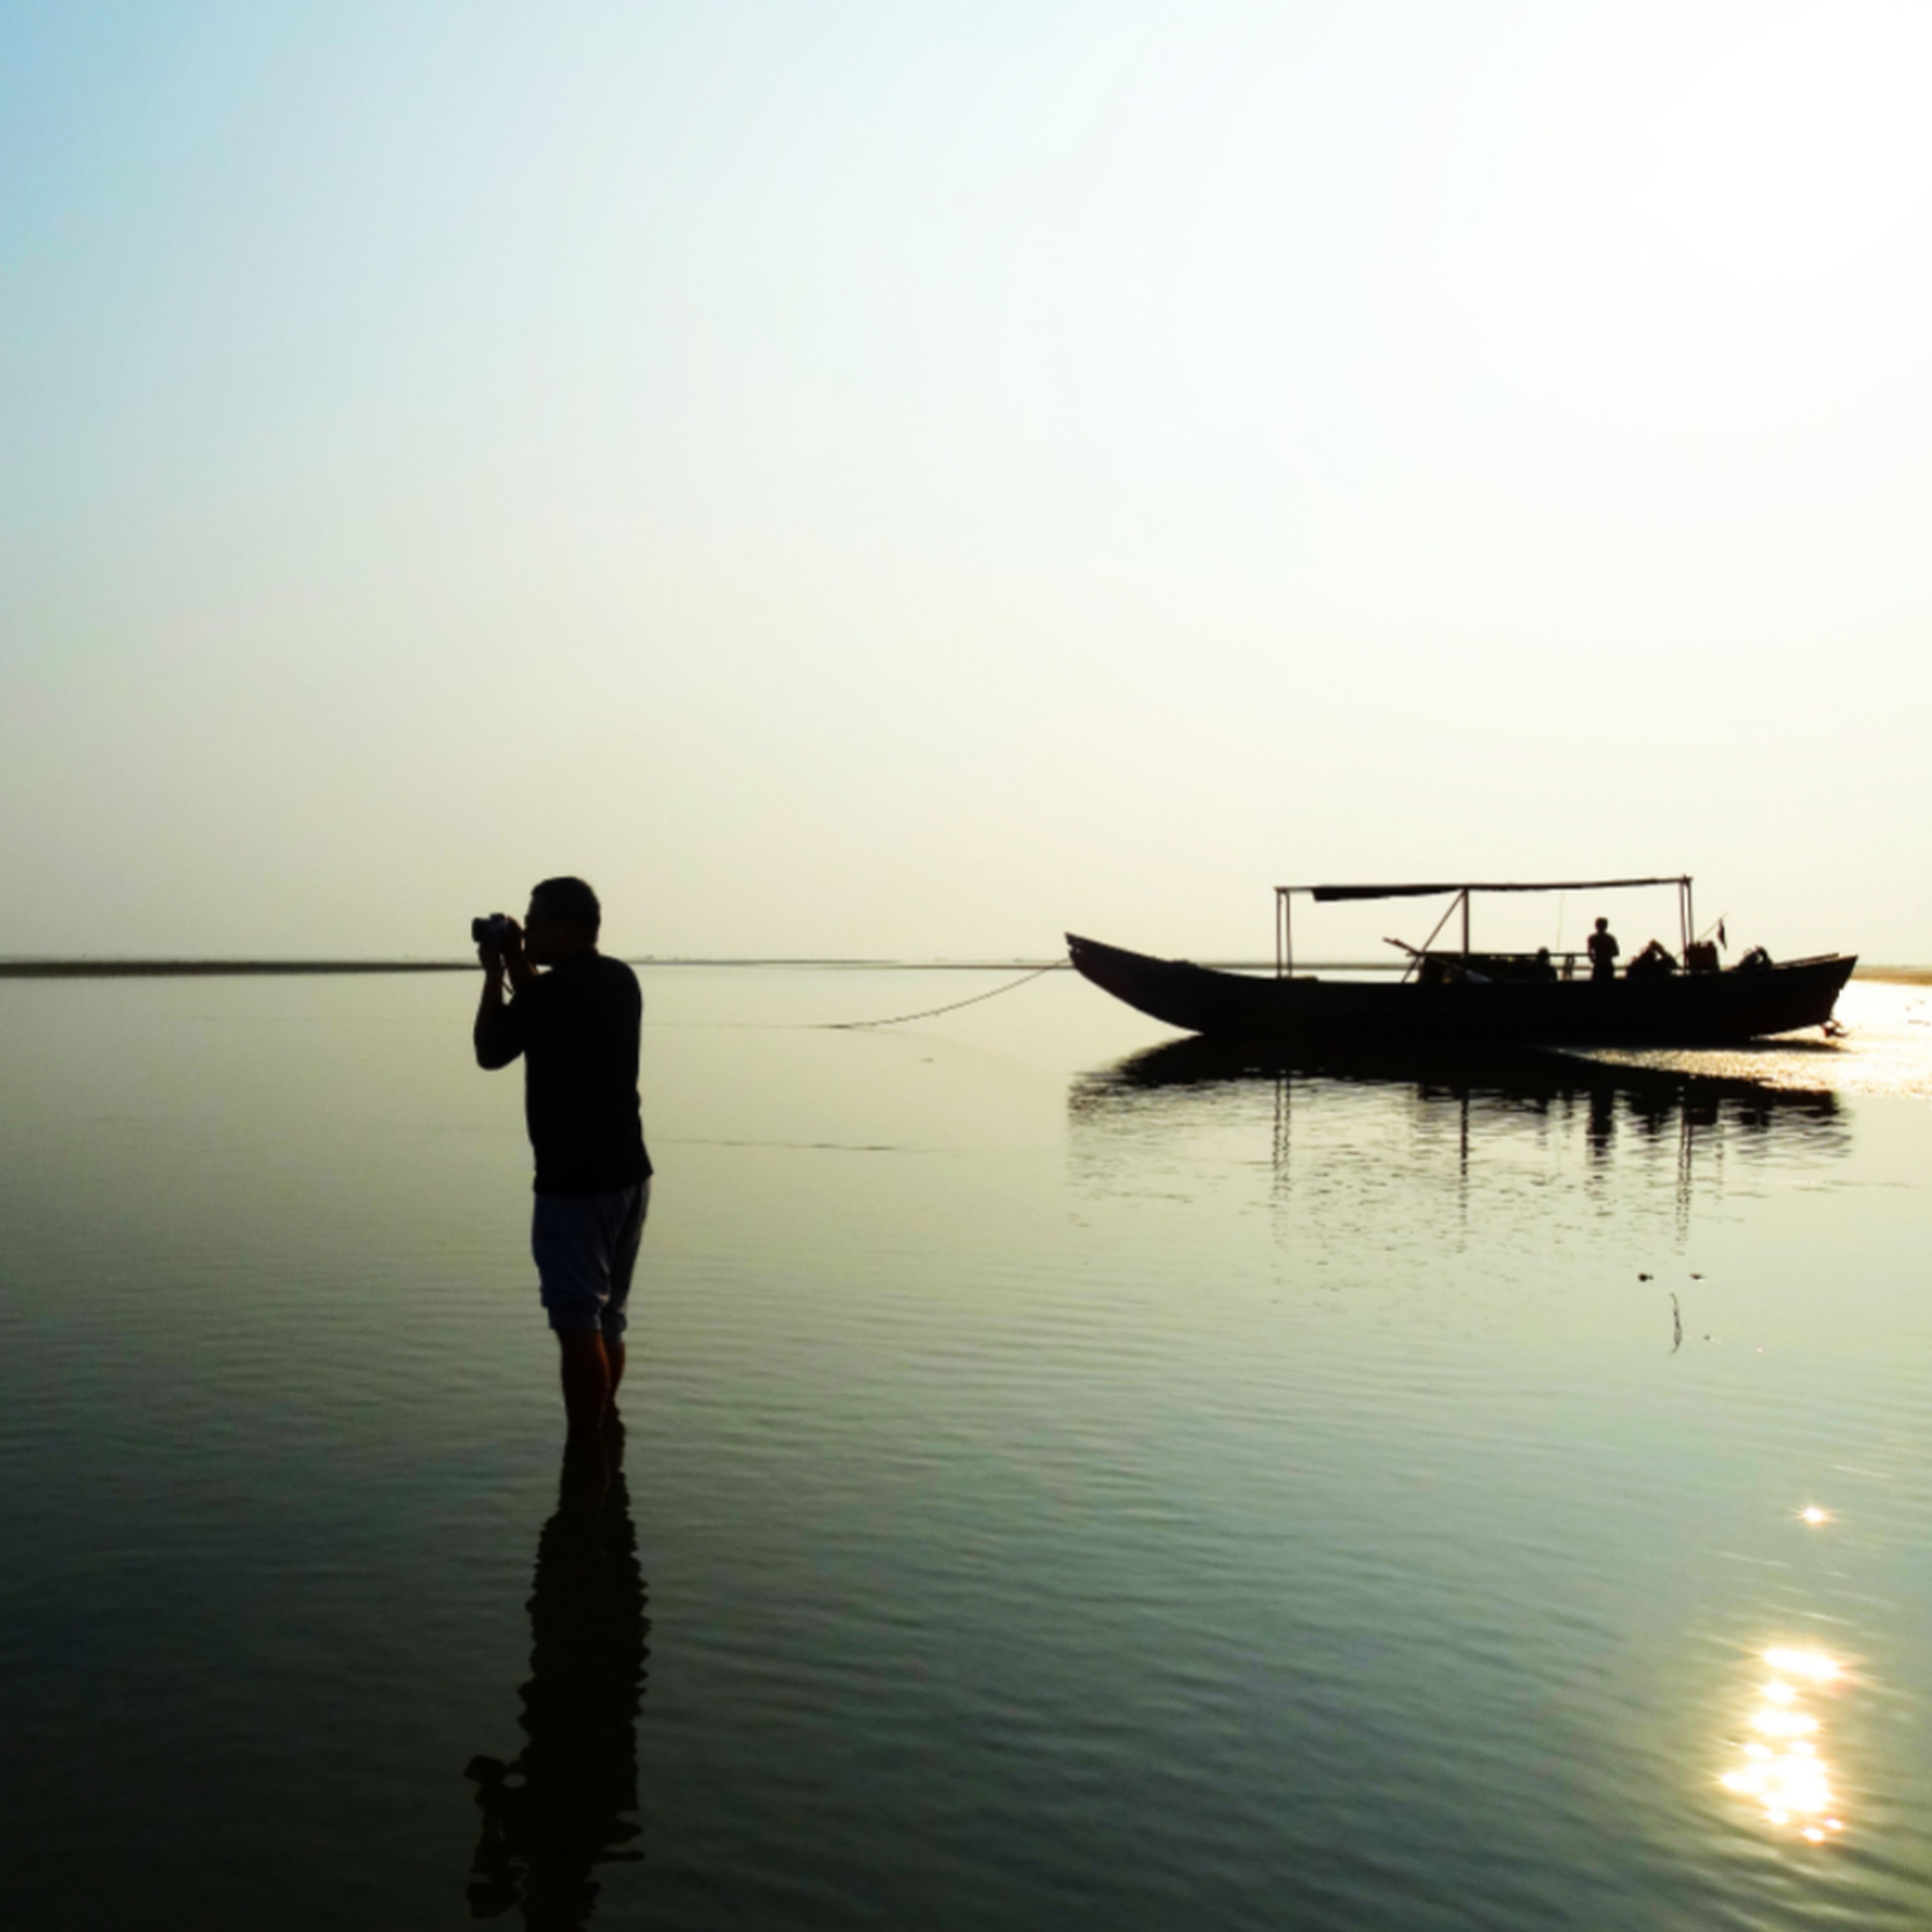 water, clear sky, silhouette, sunset, nautical vessel, sea, reflection, copy space, tranquility, tranquil scene, boat, transportation, waterfront, scenics, beauty in nature, nature, horizon over water, men, mode of transport